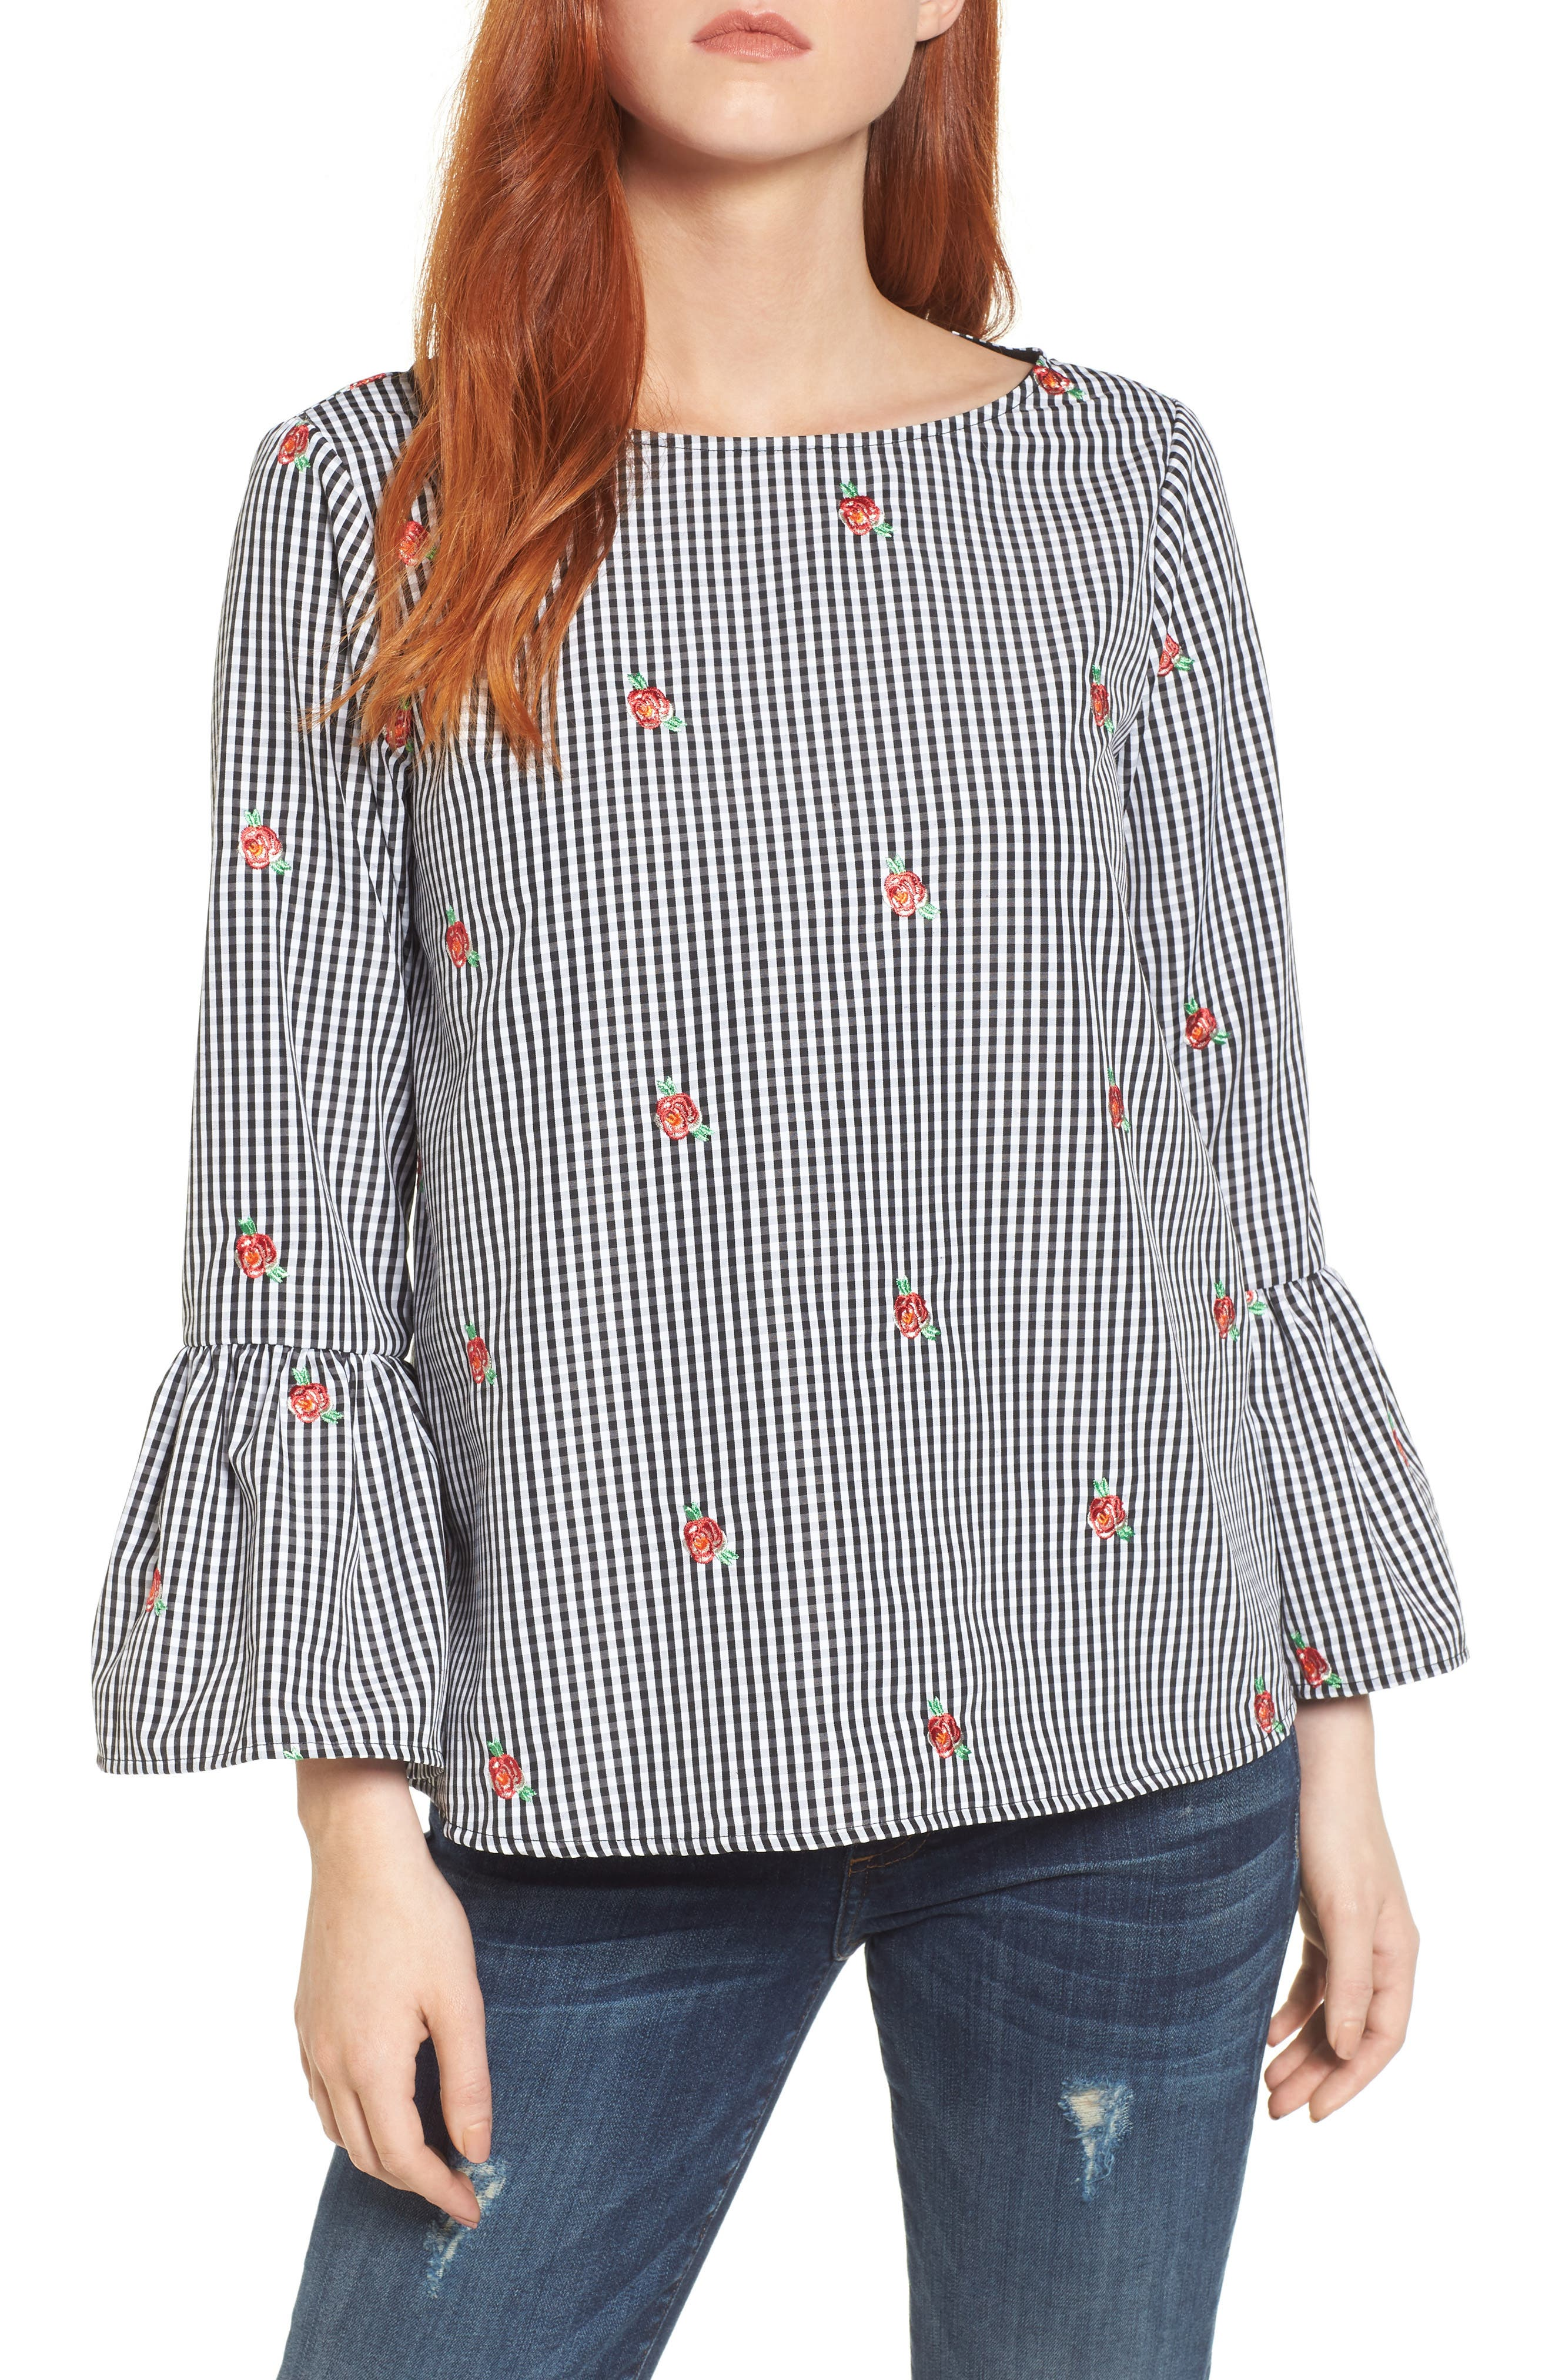 Gingham Bell Sleeve Top,                             Main thumbnail 1, color,                             Black Gingham Yellow Flower